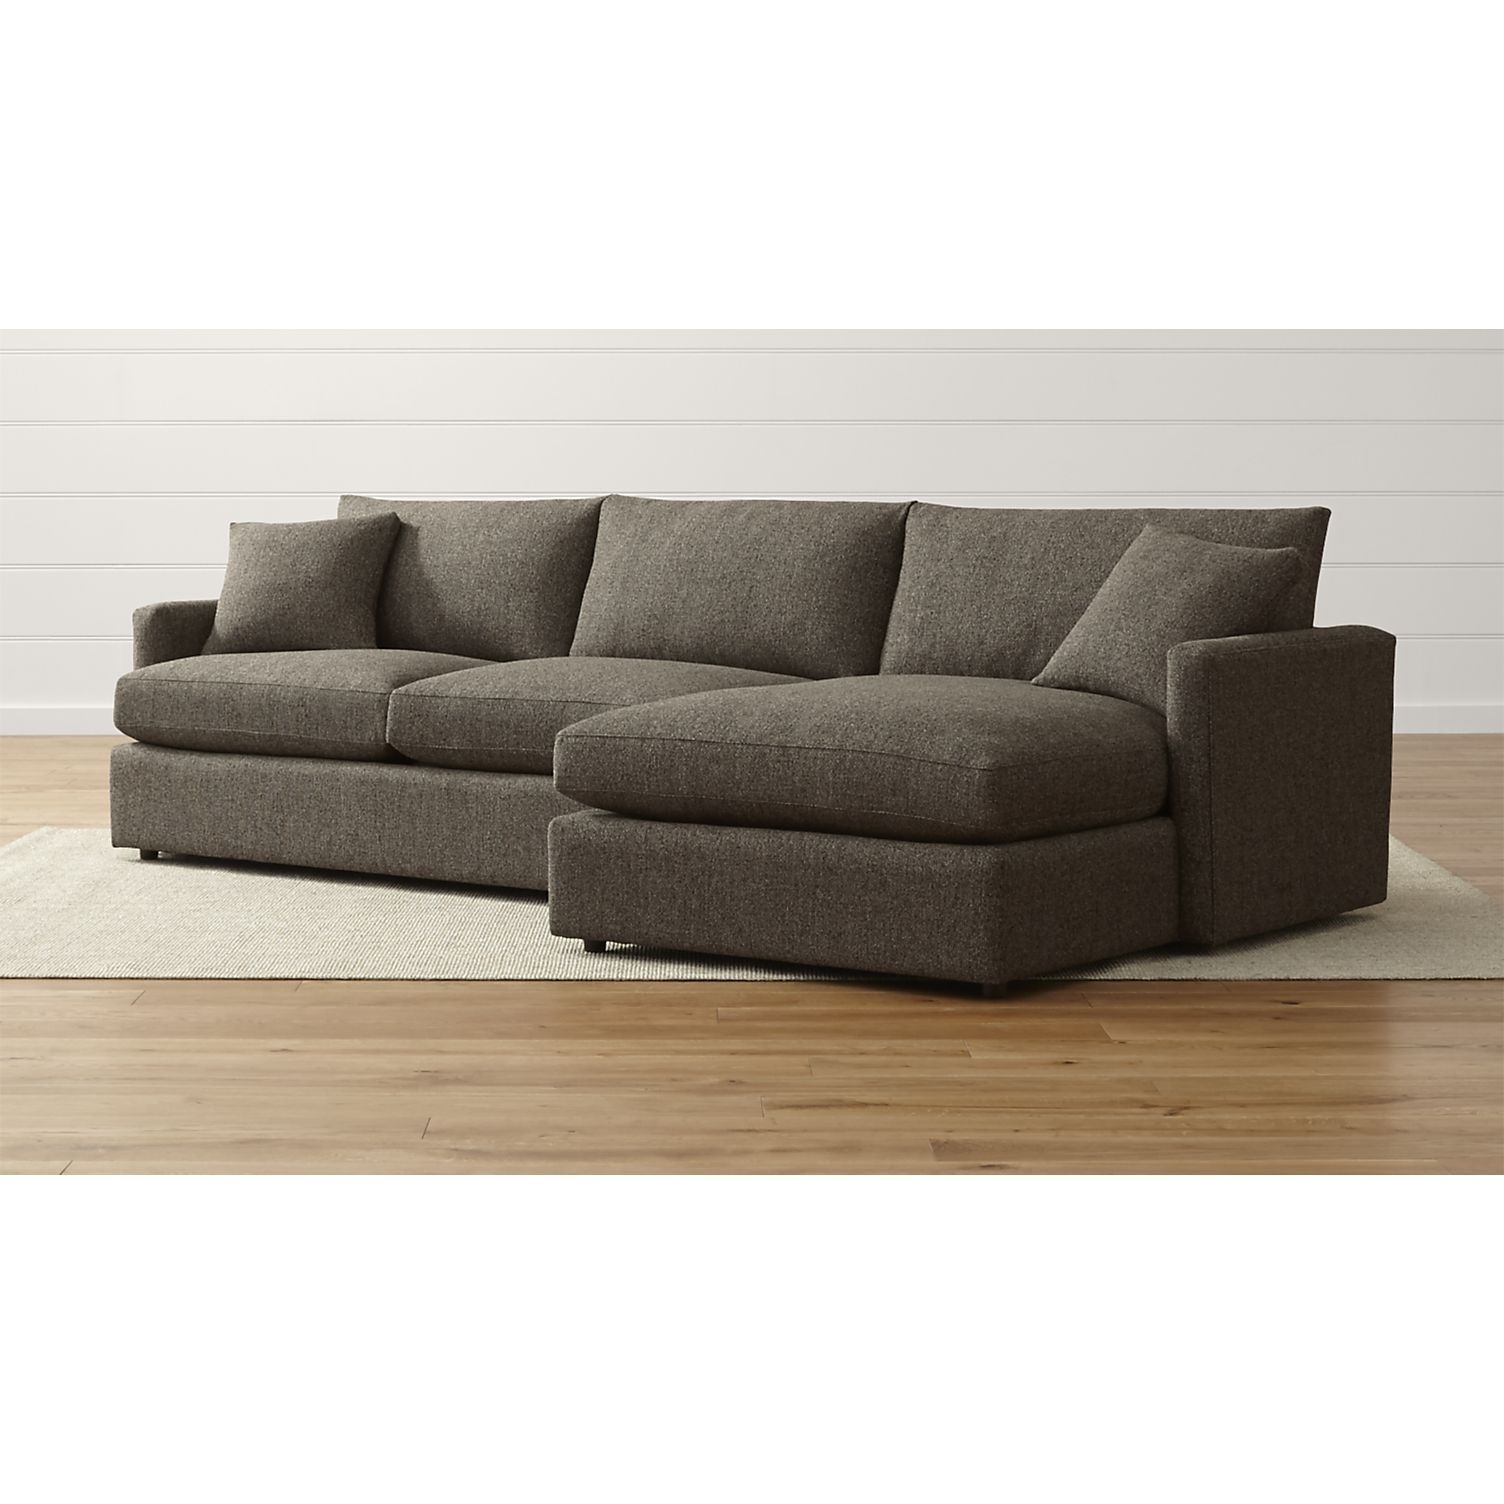 Elegant Futon Sectional Sofa Bed Pictures — Beautiful Furniture Home in Arrowmask 2 Piece Sectionals With Sleeper & Left Facing Chaise (Image 7 of 30)